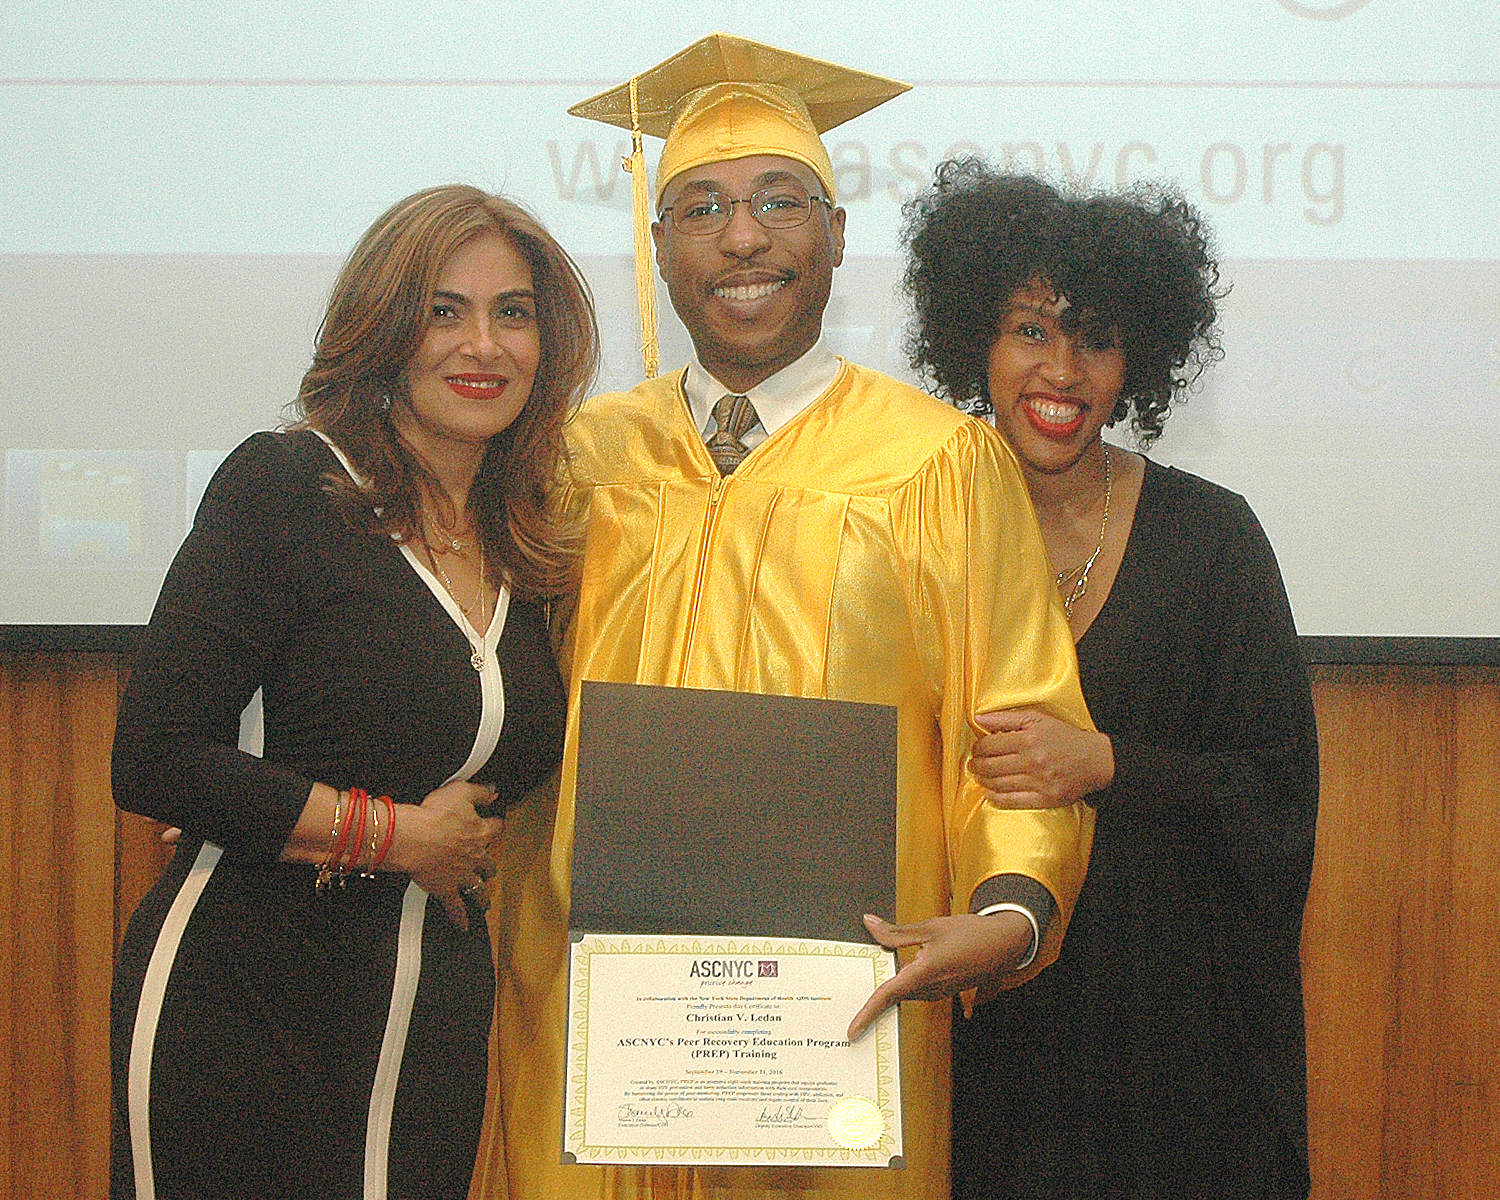 Christian L. receiving his certification